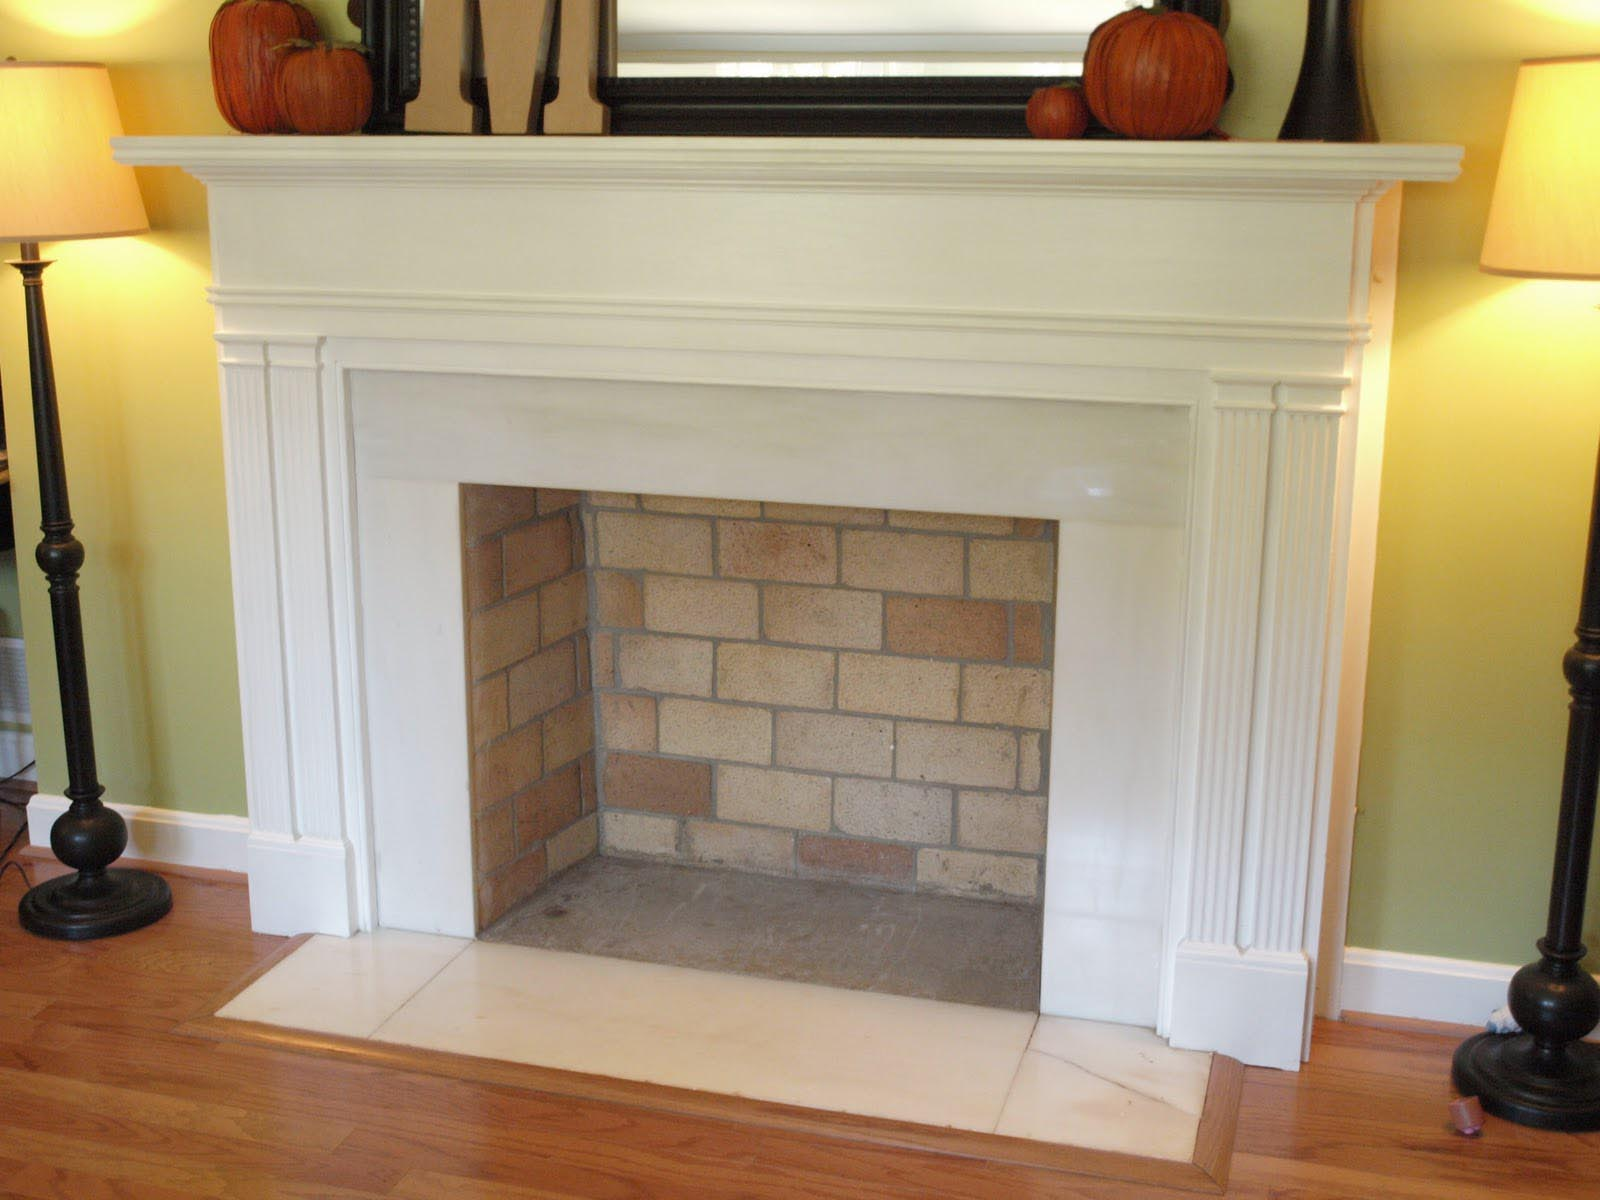 How To Make A Fake Fireplace Out Of A Bookshelf ...